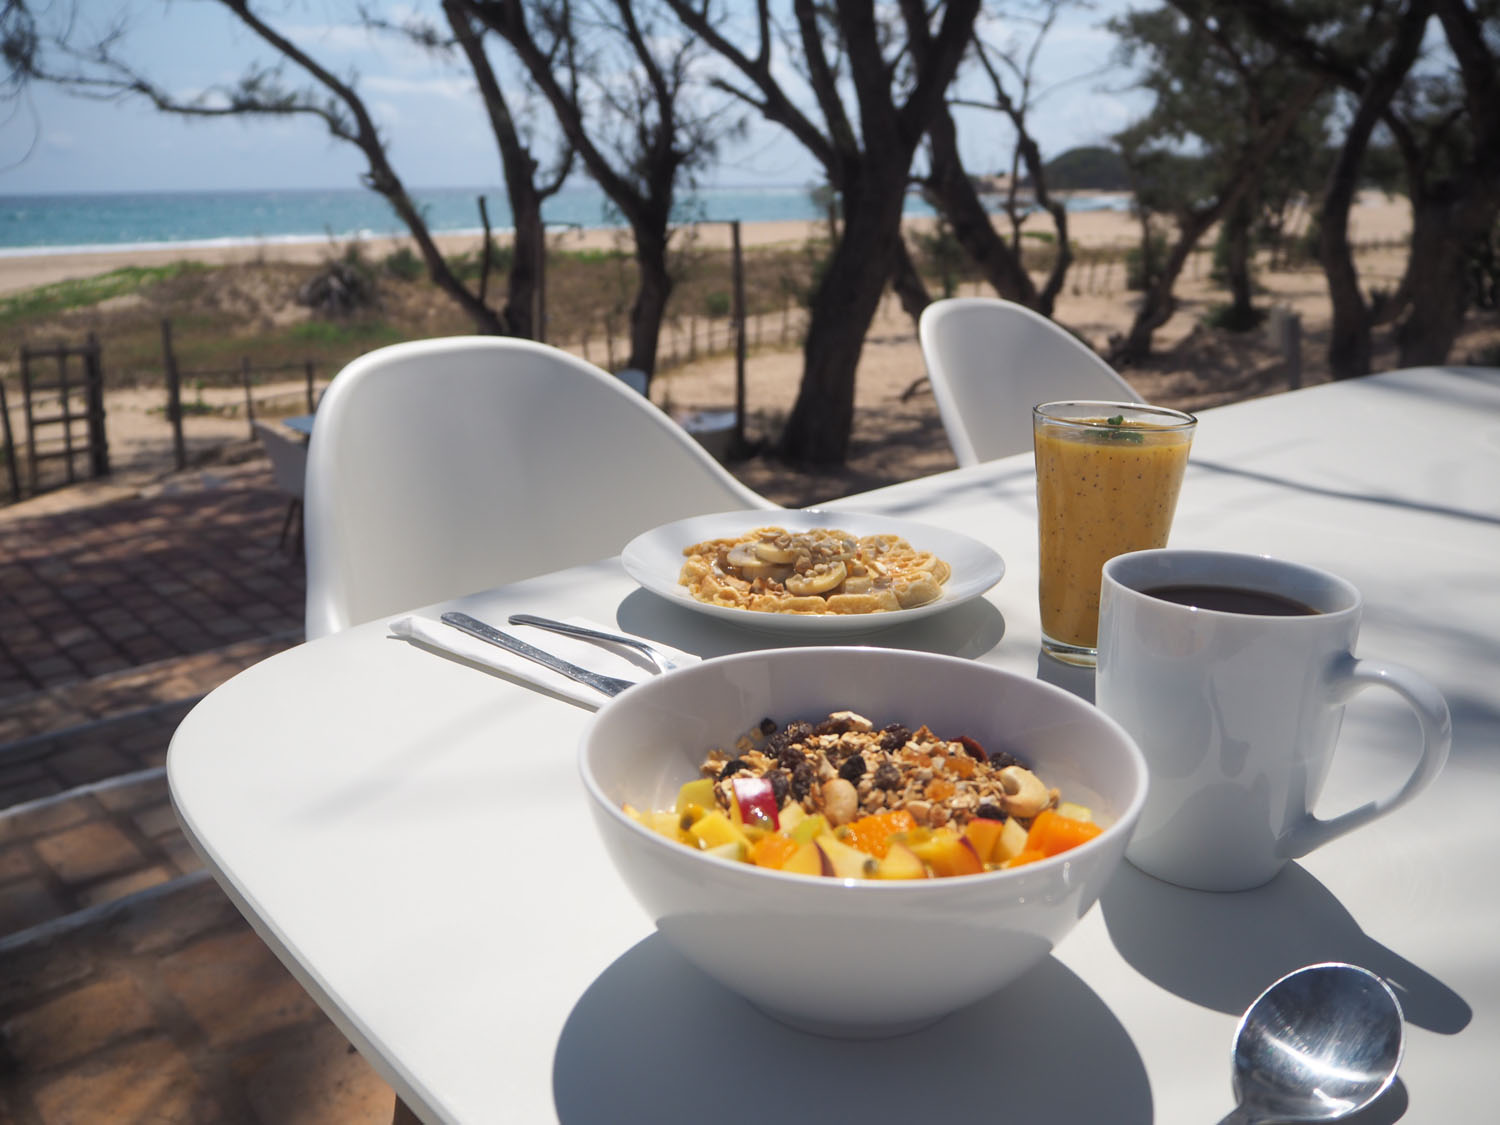 Breakfast by the beach at Happi restaurant